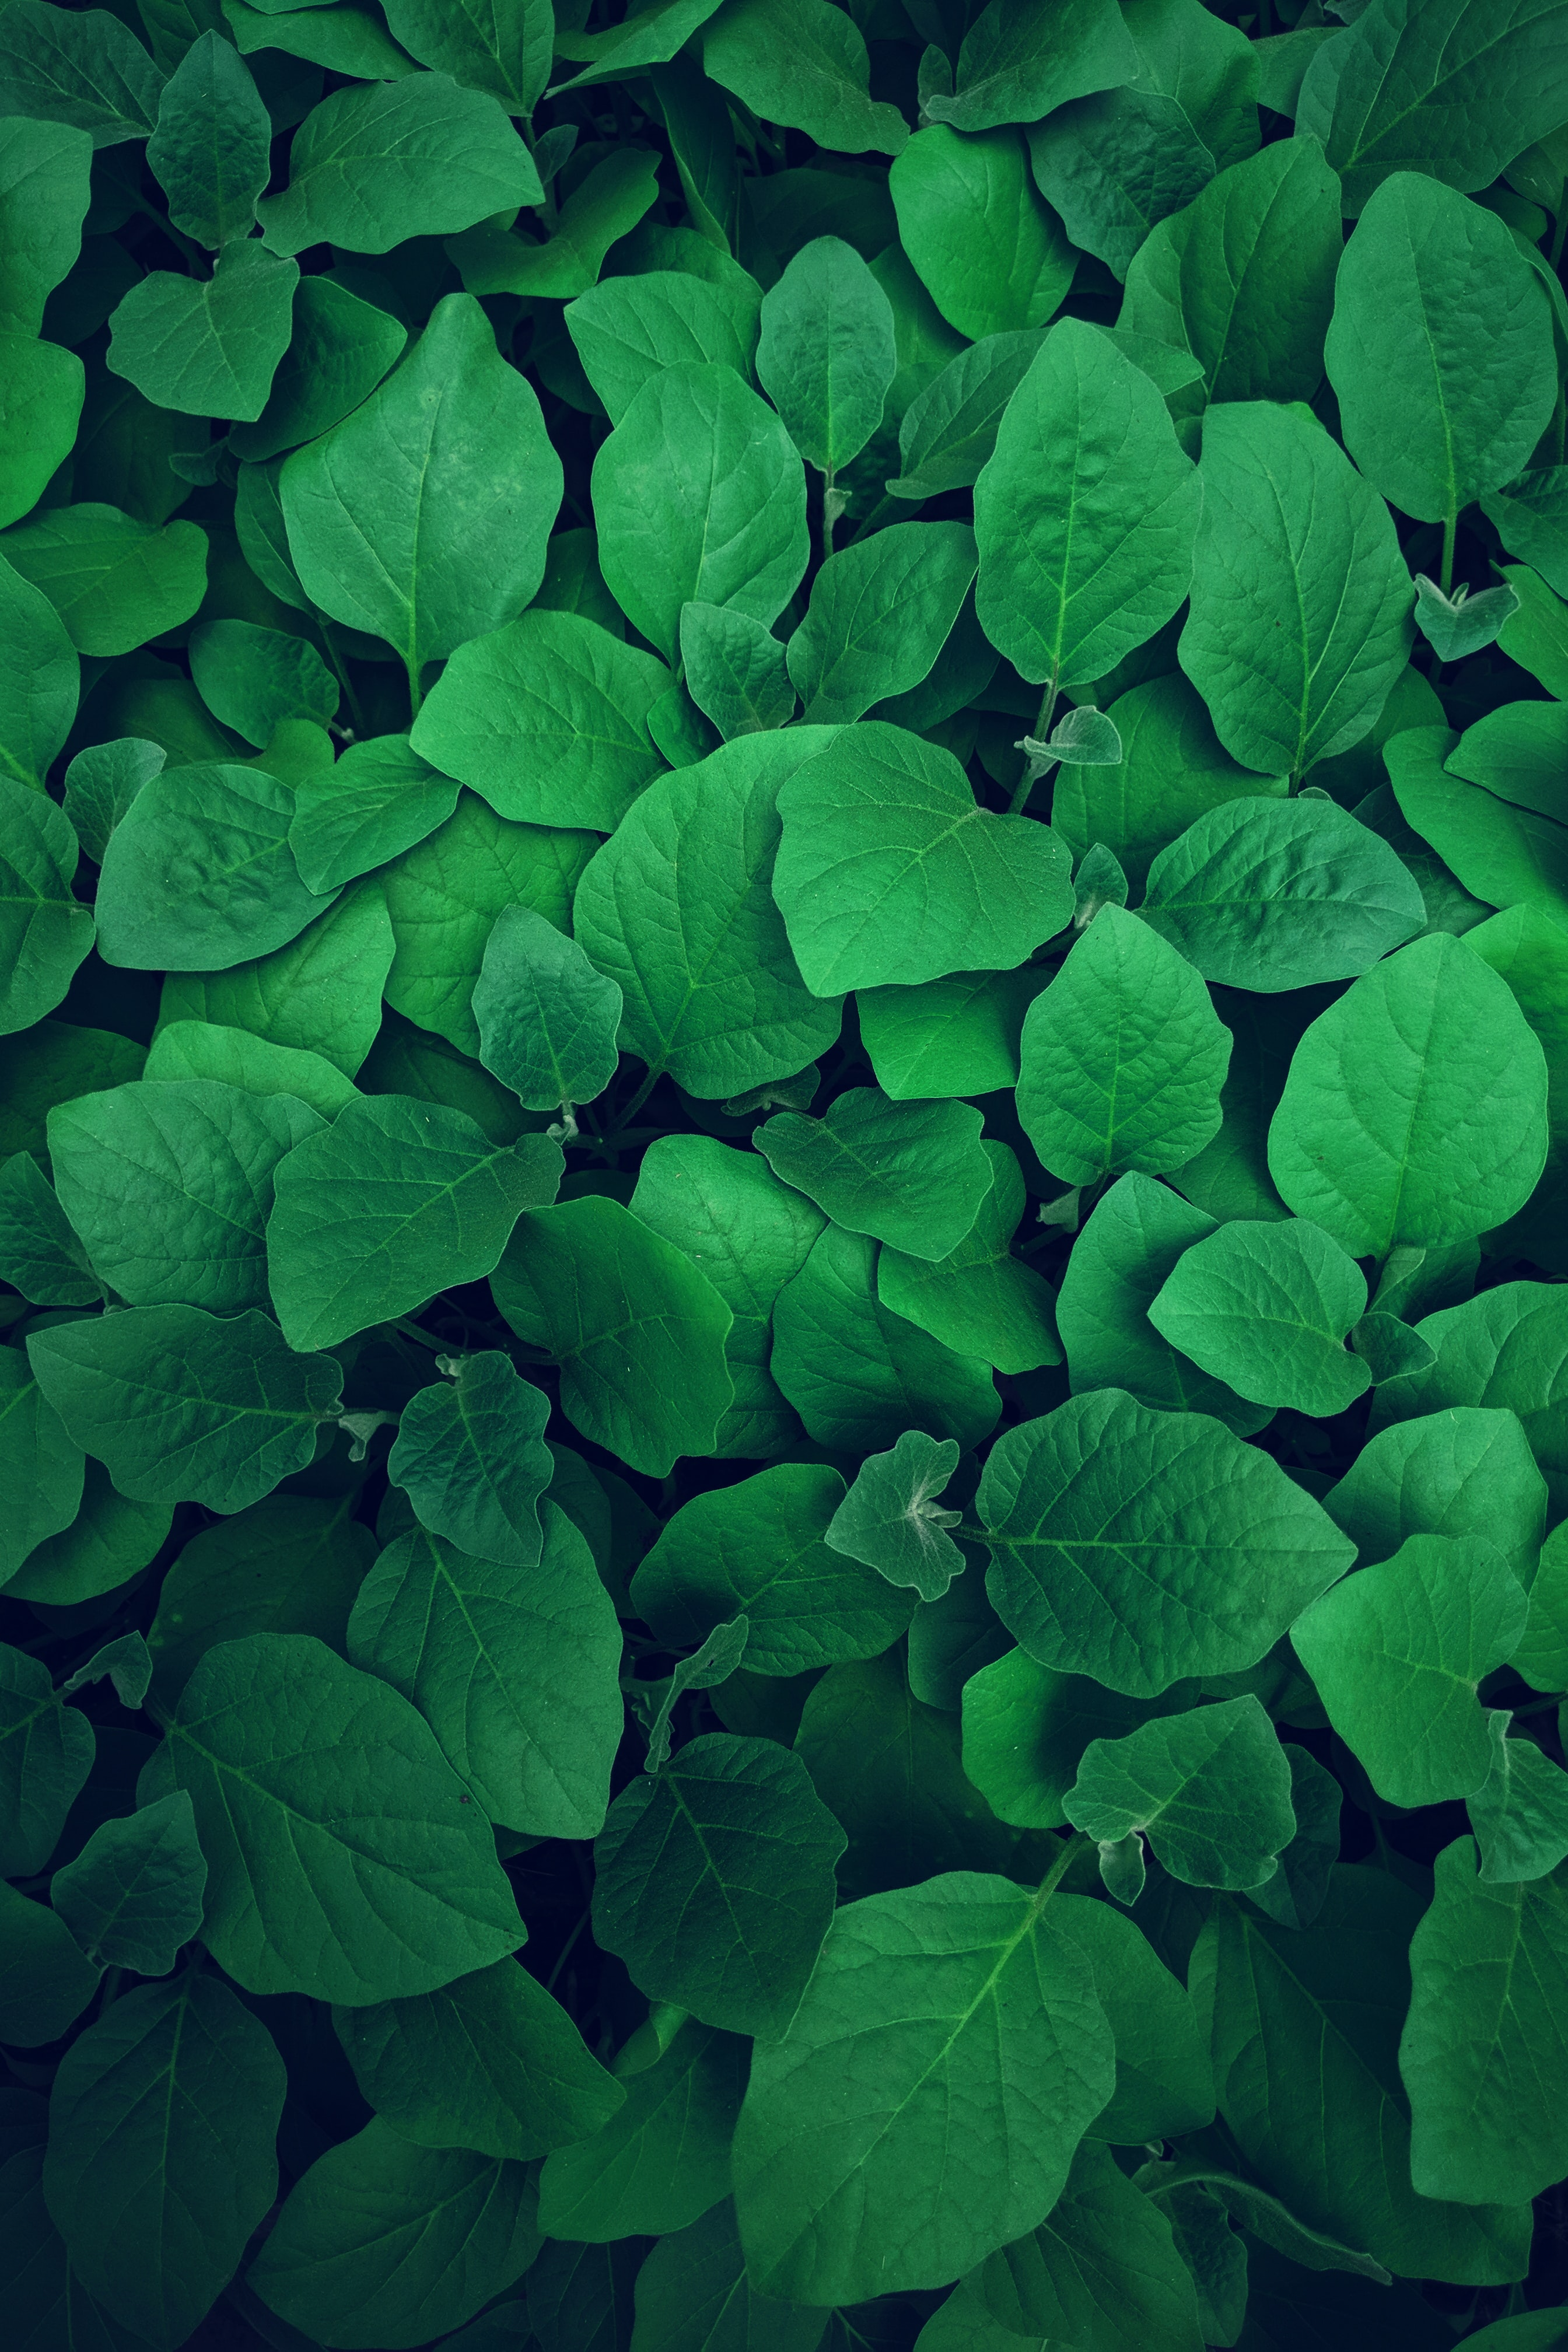 Green Wallpapers Free Hd Download 500 Hq Unsplash